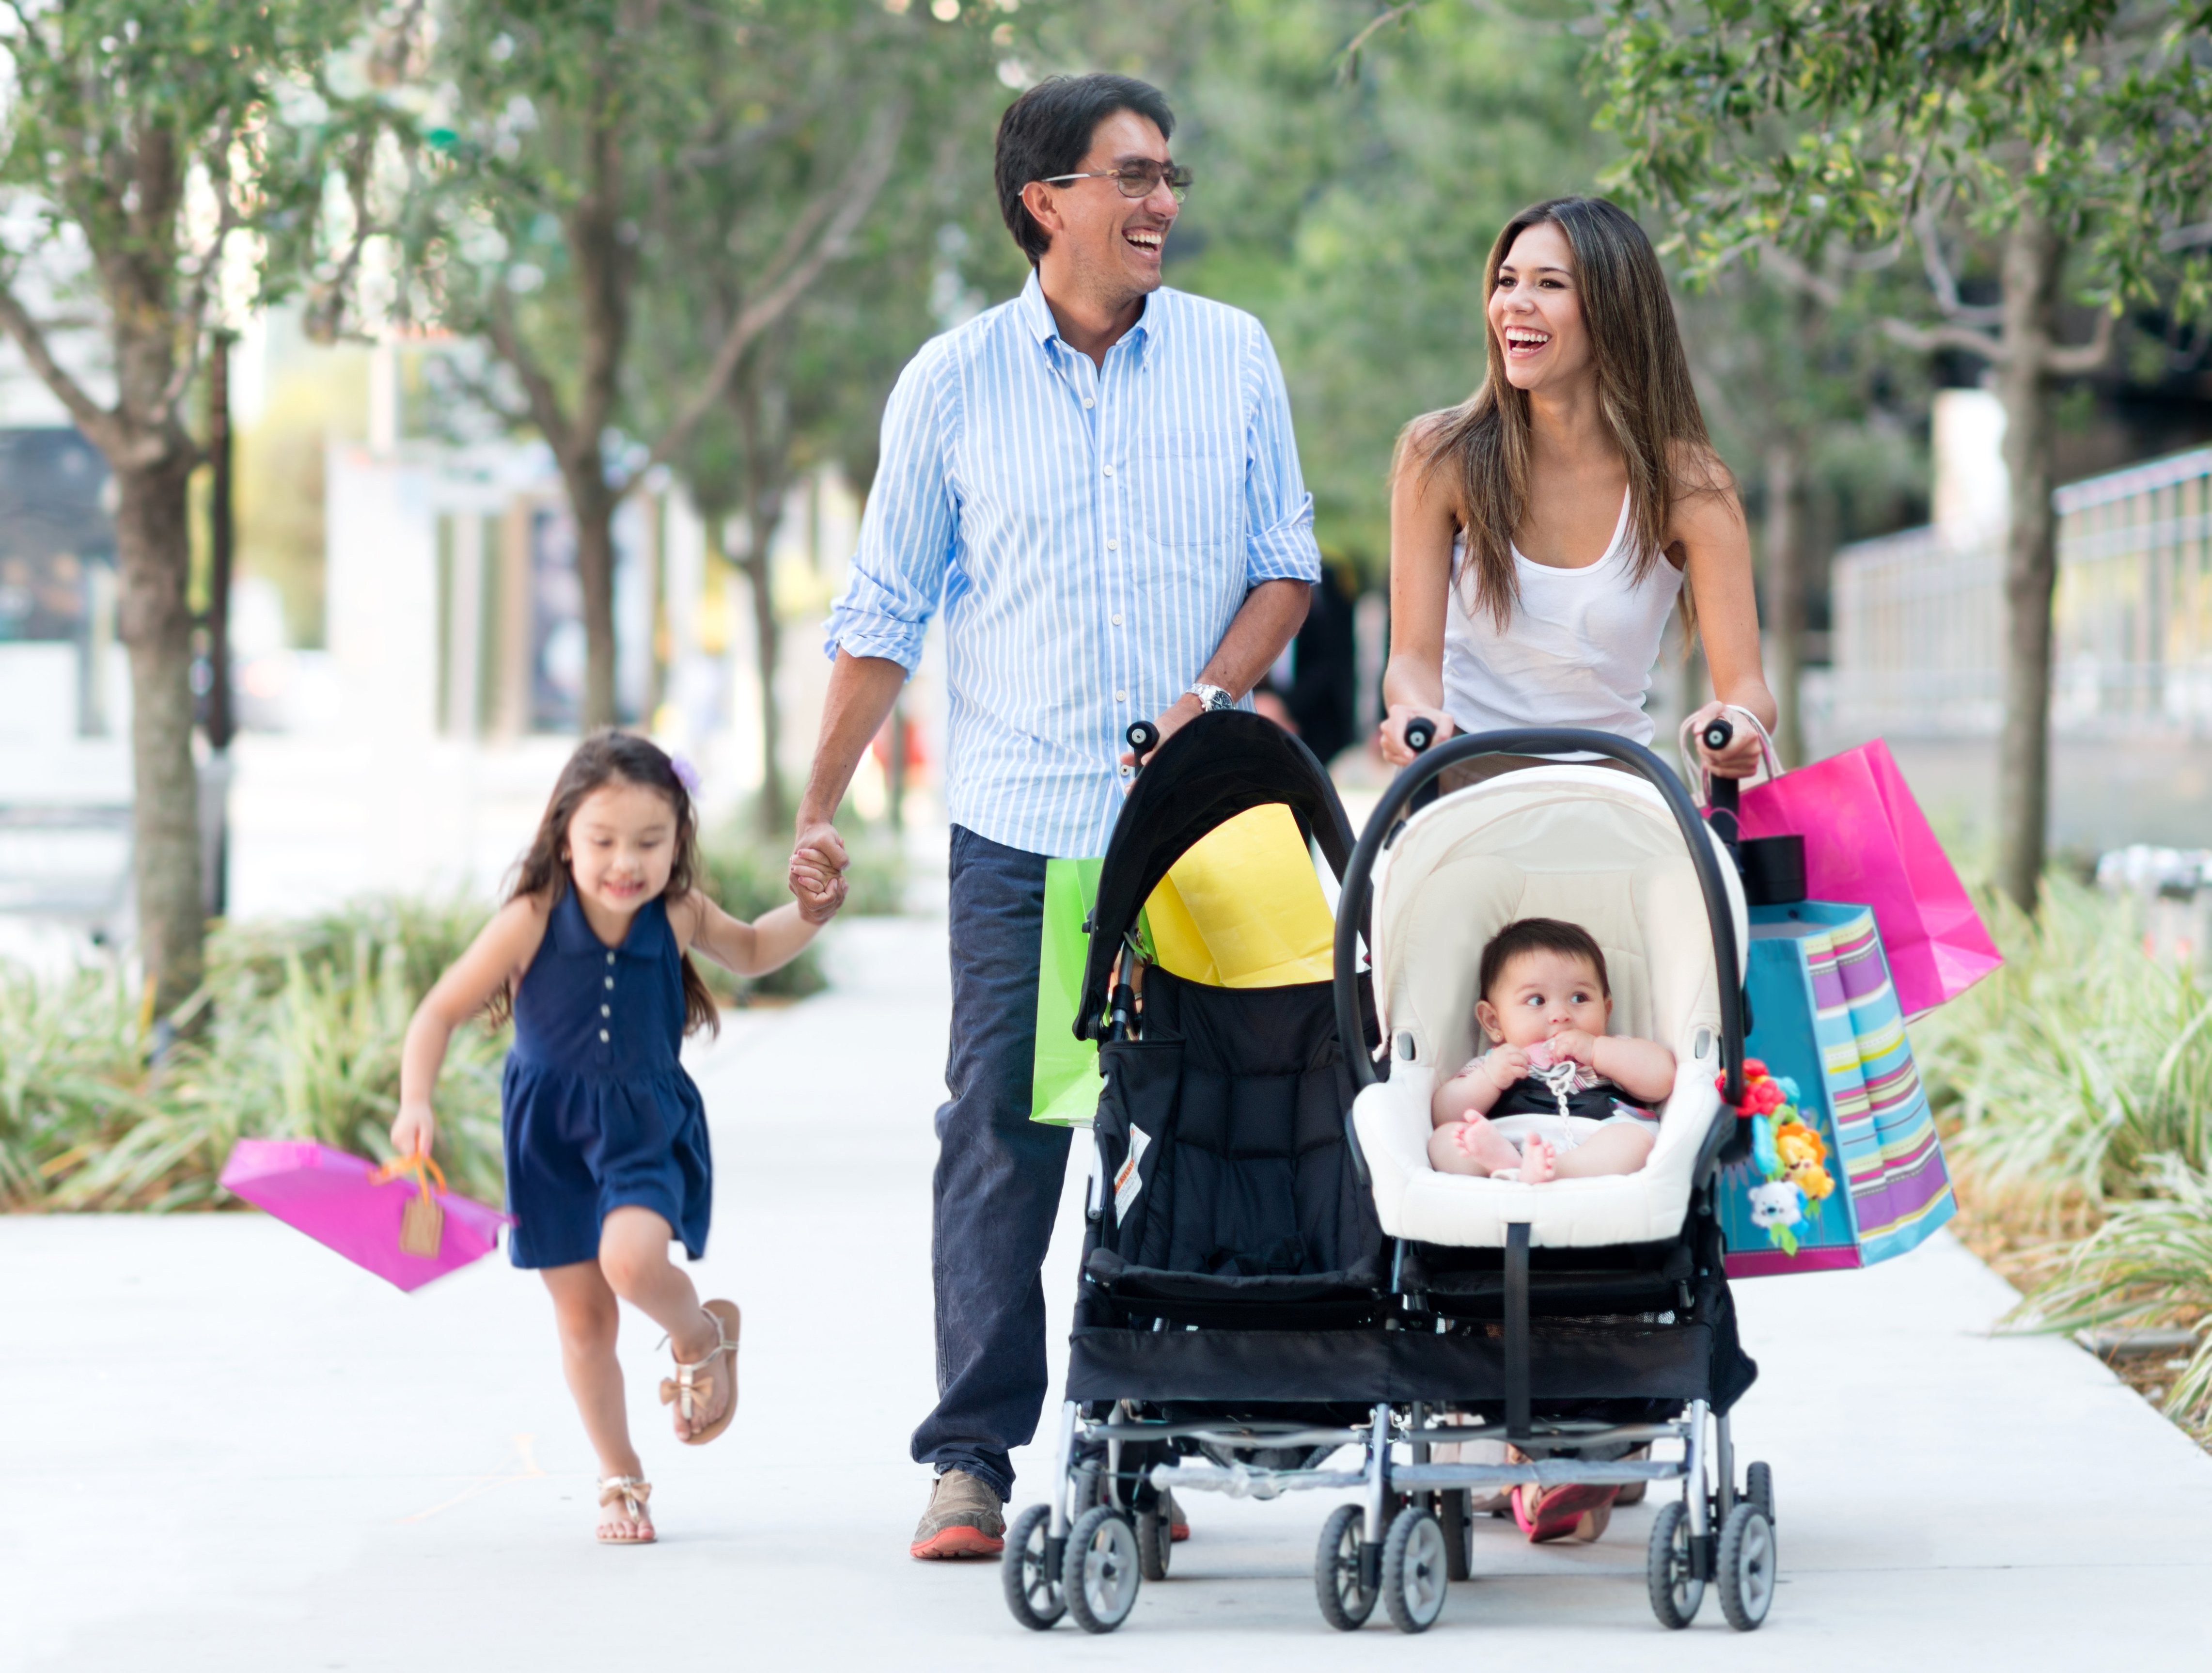 Family out shopping looking very happy